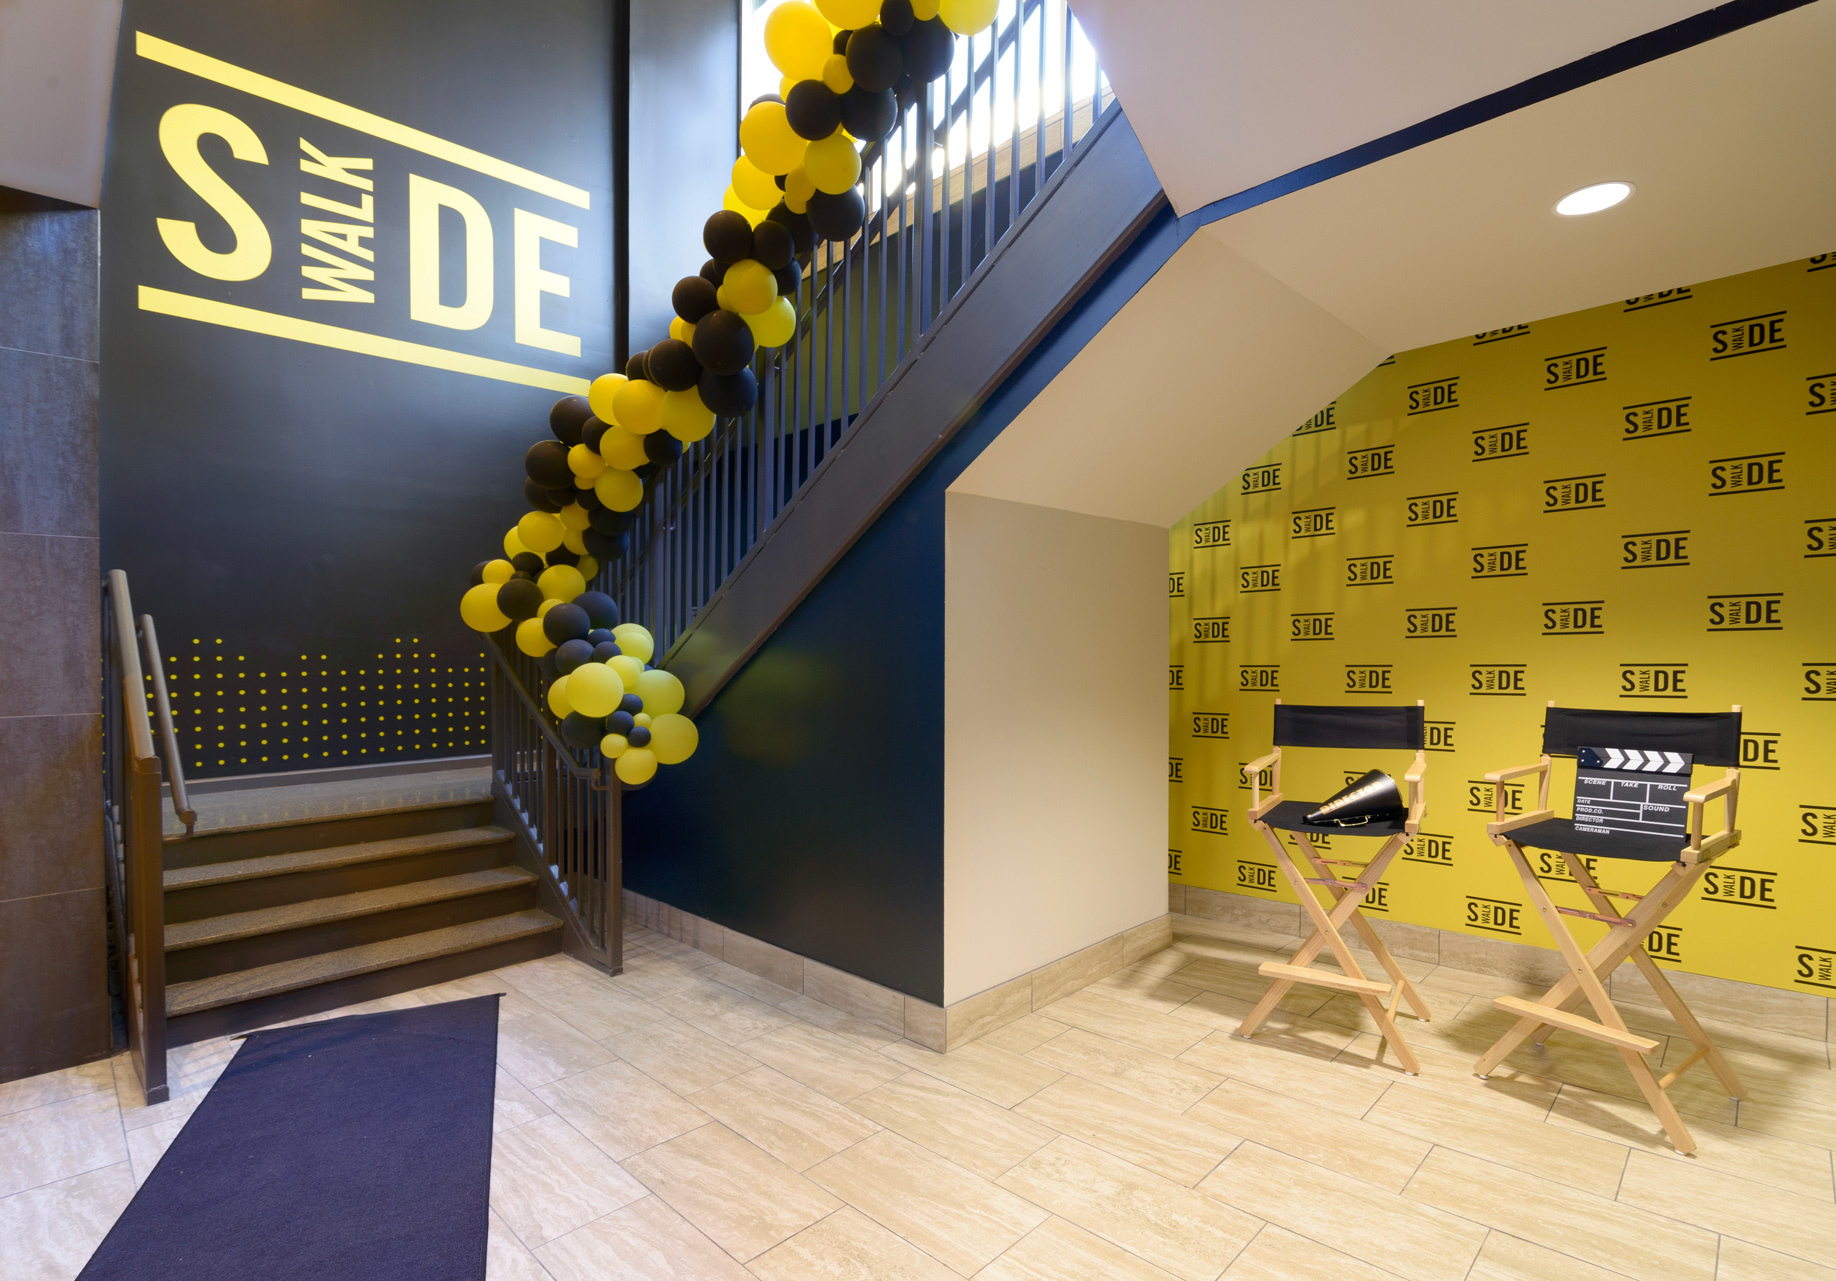 Entry area with step and repeat photo wall and branded wall graphics at Sidewalk Cinema